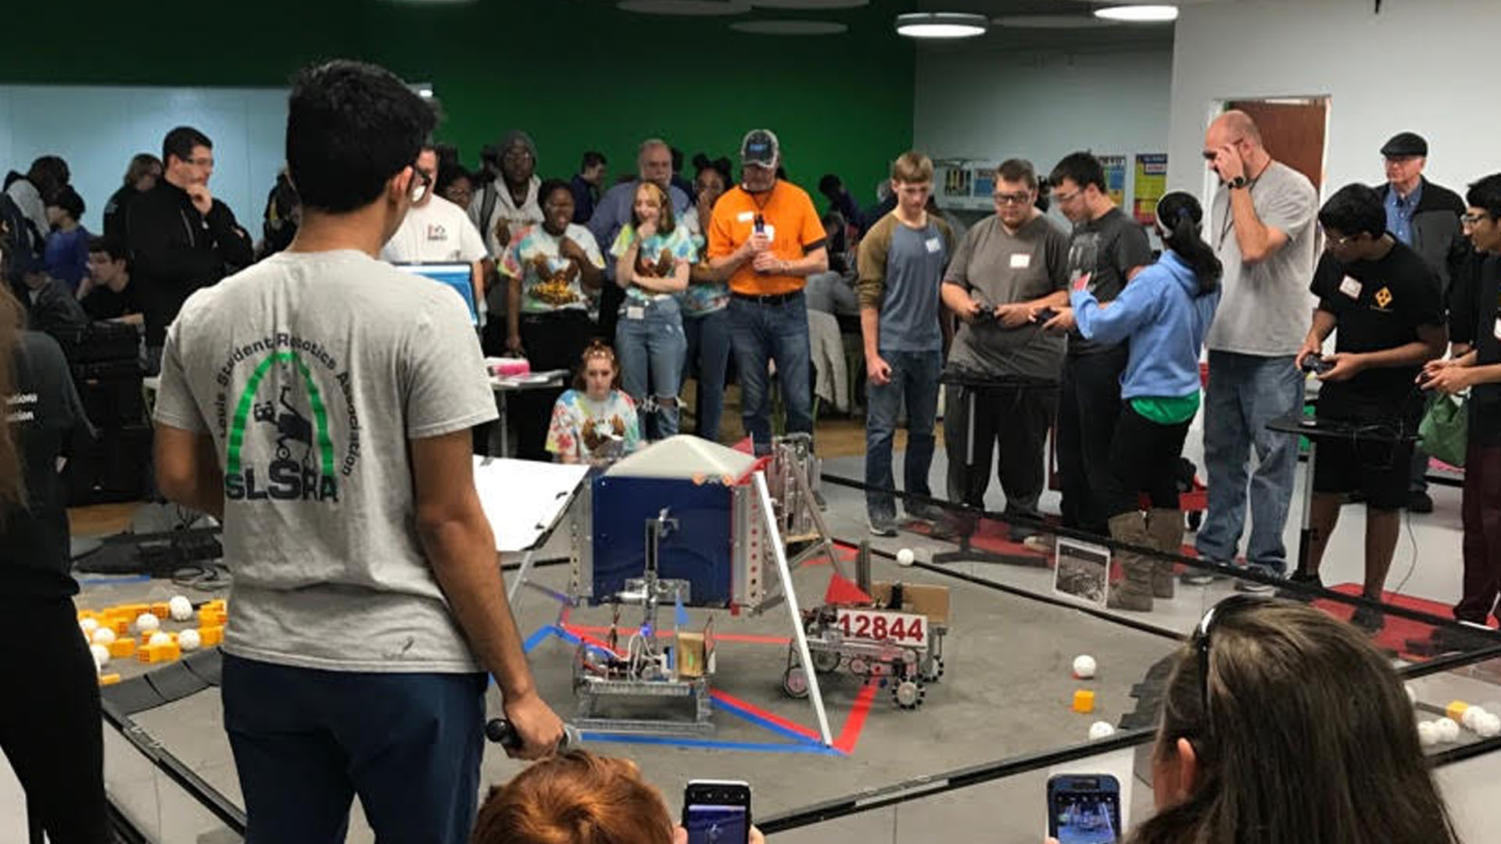 """Arjun Khorana, junior, observes the other robots at the Girl Scouts of Eastern Missouri Meet on Nov. 17. While the Gluons did not participate in this meet, the Lexons placed first and the Barrons placed second. """"It's important to understand how far we've come and it's good to learn from this experience,"""" Khorana said."""